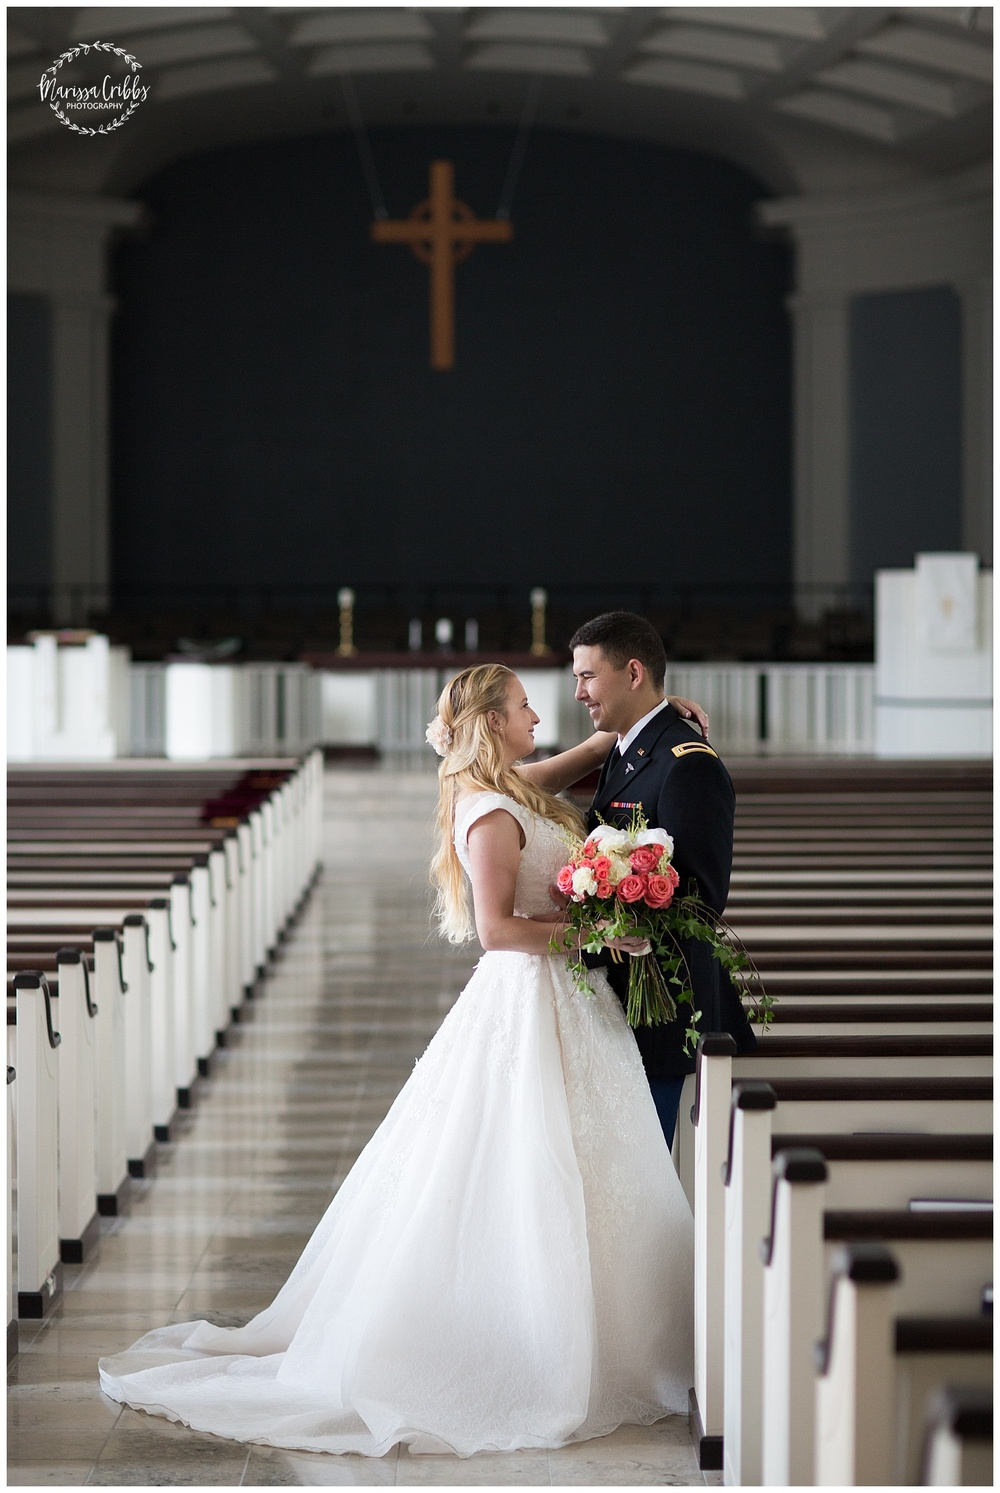 Jimenez Wedding | Marissa Cribbs Photography_0298.jpg